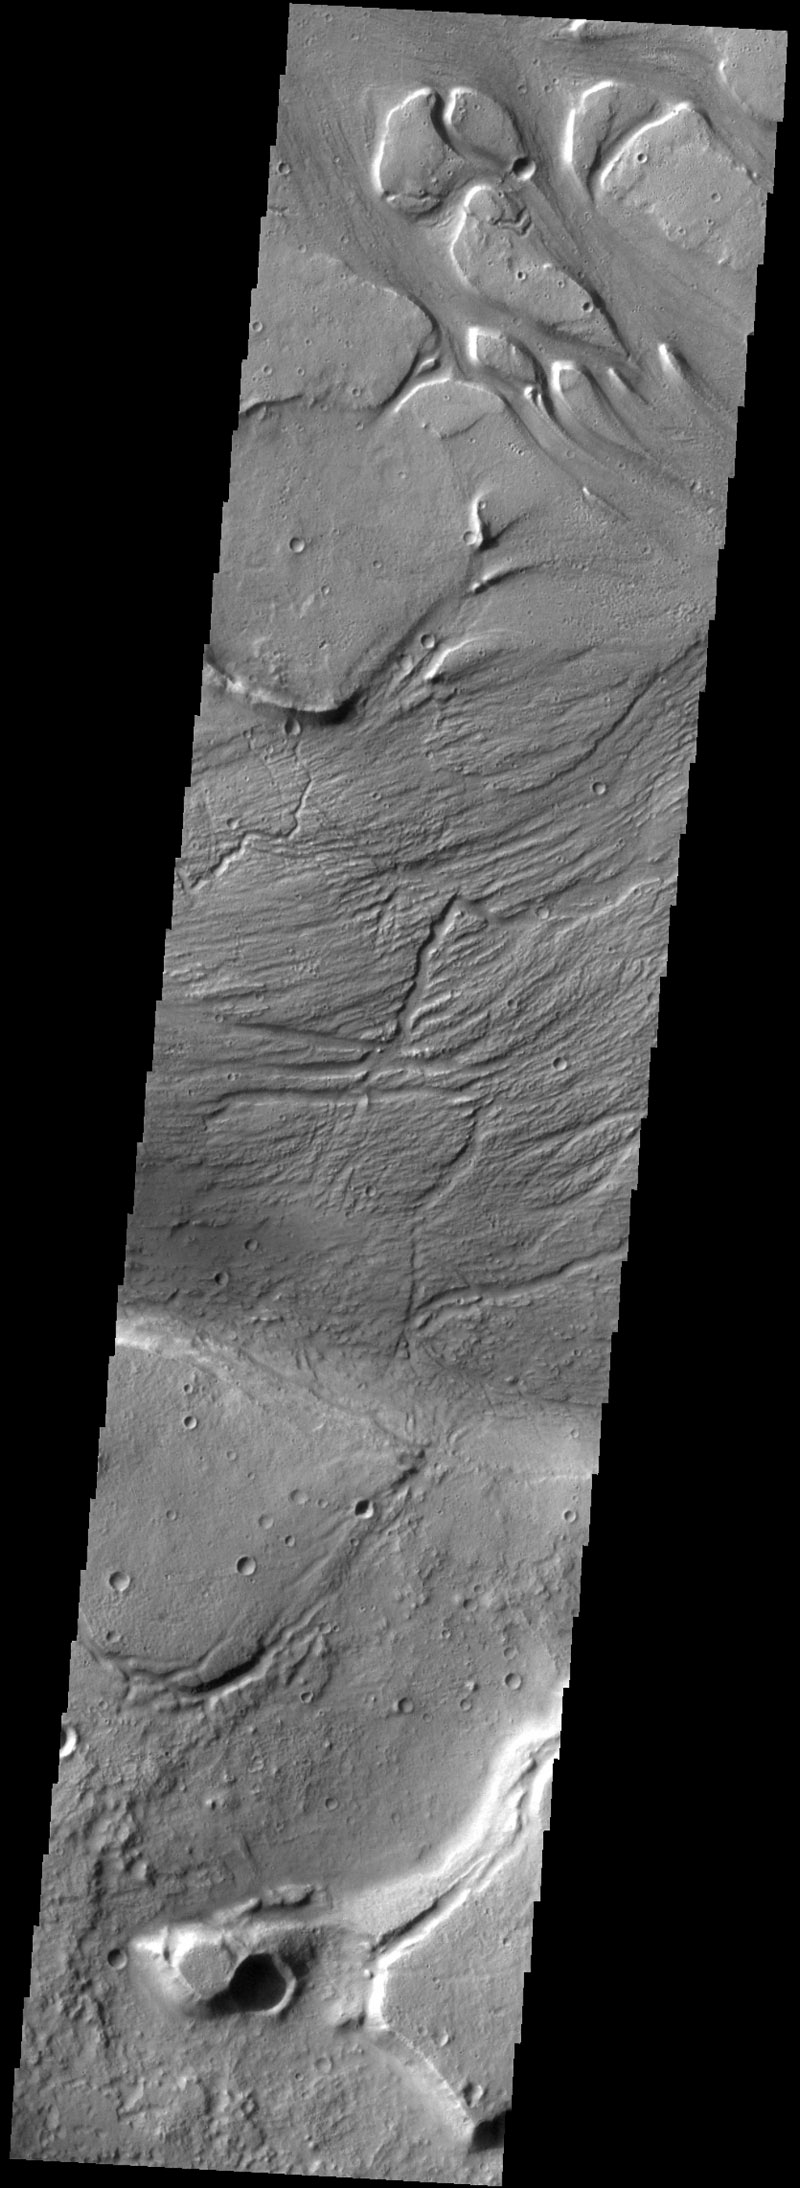 This series of images stitched together as one, show several interpreted streamlined islands in Kasei Valles near the 'mouth' of the outflow channel where it empties out onto a volcanic plain. The supposed tear-drop-shaped island features can be seen near the top of the image. Such features are commonly seen in river channels across Earth, which leads some scientists to believe these features are supporting evidence that Kasei Valles is a series of river channels. Though, as we'll discuss in Part 2, such features can also be created by wind deposition, as well as turbidity flows.  As a personal note, I believe this image shows good evidence of water flow, but it is also important we remember gravity, atmospheric pressure, etc. are nothing like they are on Earth, and as such we should be very careful about how we interpret things that might look the same as similar features on Earth, but could be completely different. One might best represent this image as saying it looks very much like (fill in the blank), rather than saying this absolutely is (fill in the blank). The distinction is critical, and representative of current understanding. That's science. With that said, I think this is strong evidence for past water flow. Image Credit: NASA/JPL